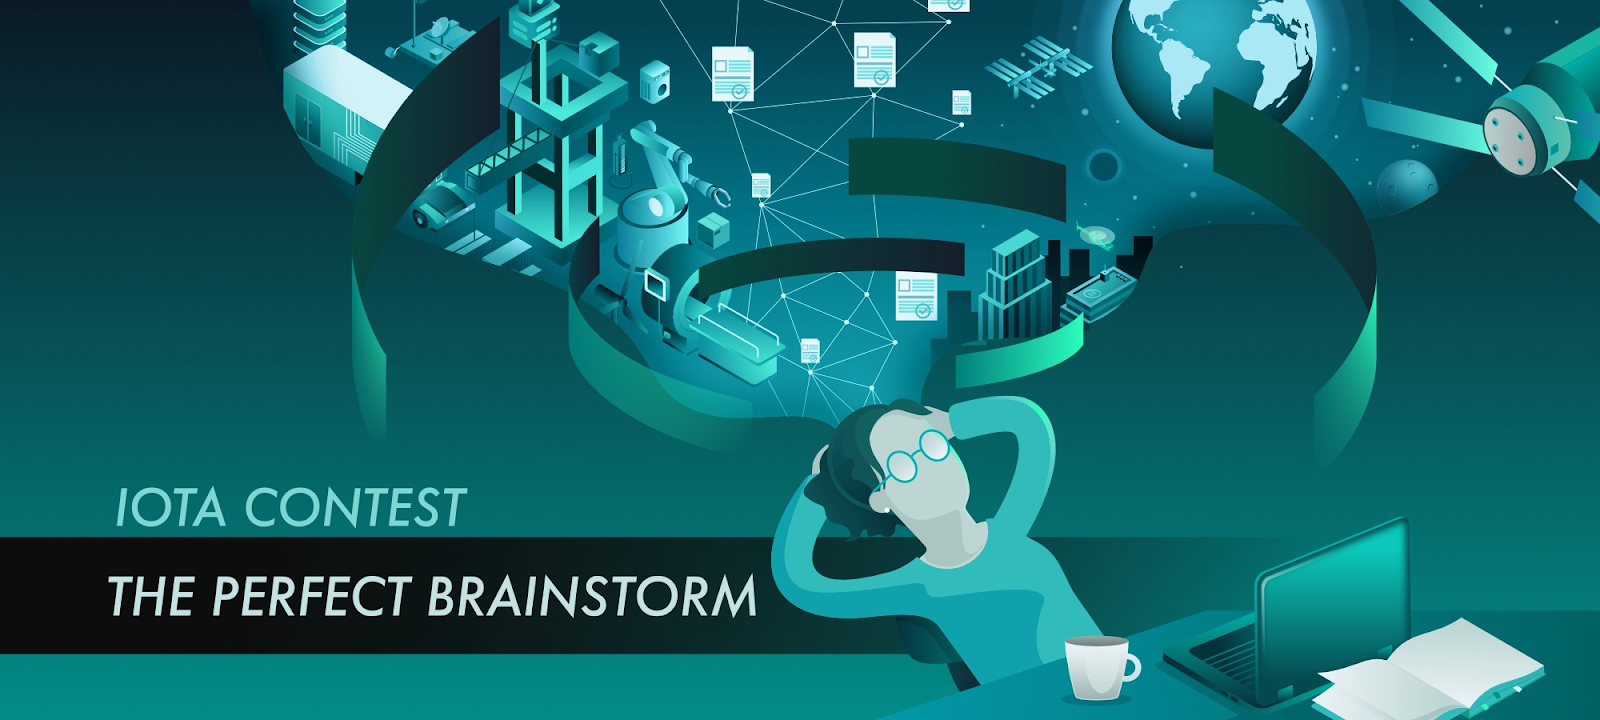 The Perfect Brainstorm: Contest Winners